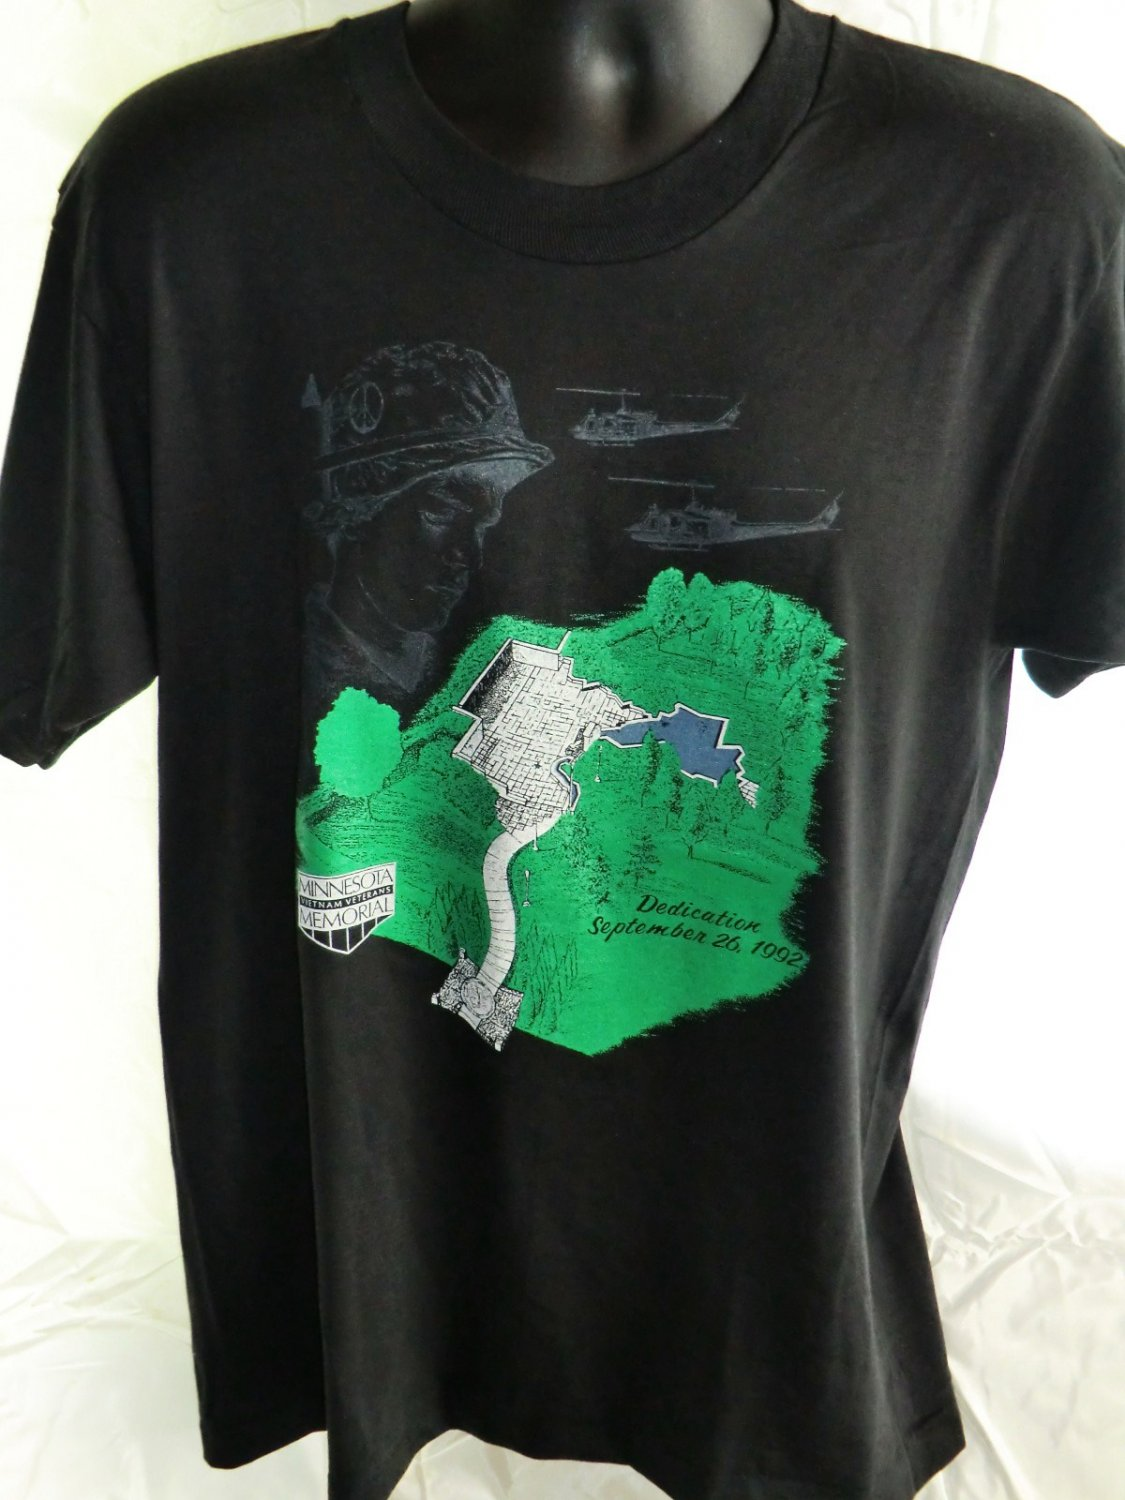 Vintage Minnesota Vietnam Memorial Medium/Large T-Shirt 9/28/1992